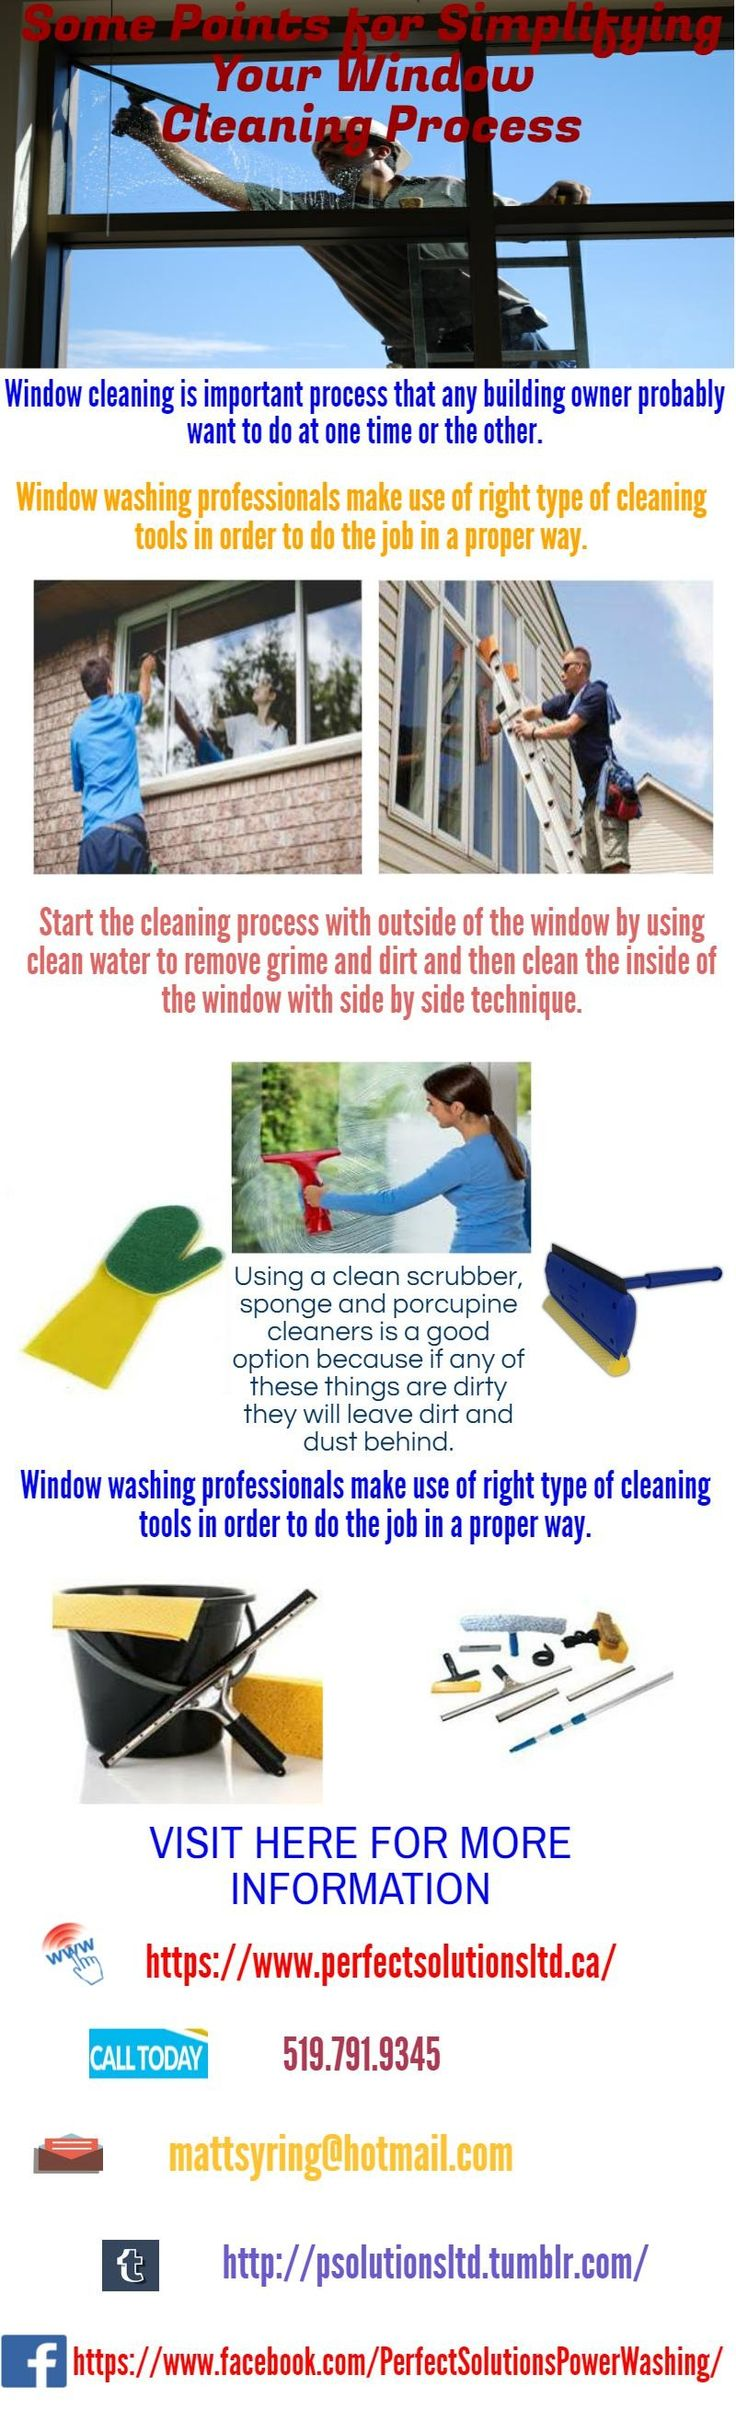 window washing professionals make use of right type of cleaning tools in order to do the job. Resume Example. Resume CV Cover Letter